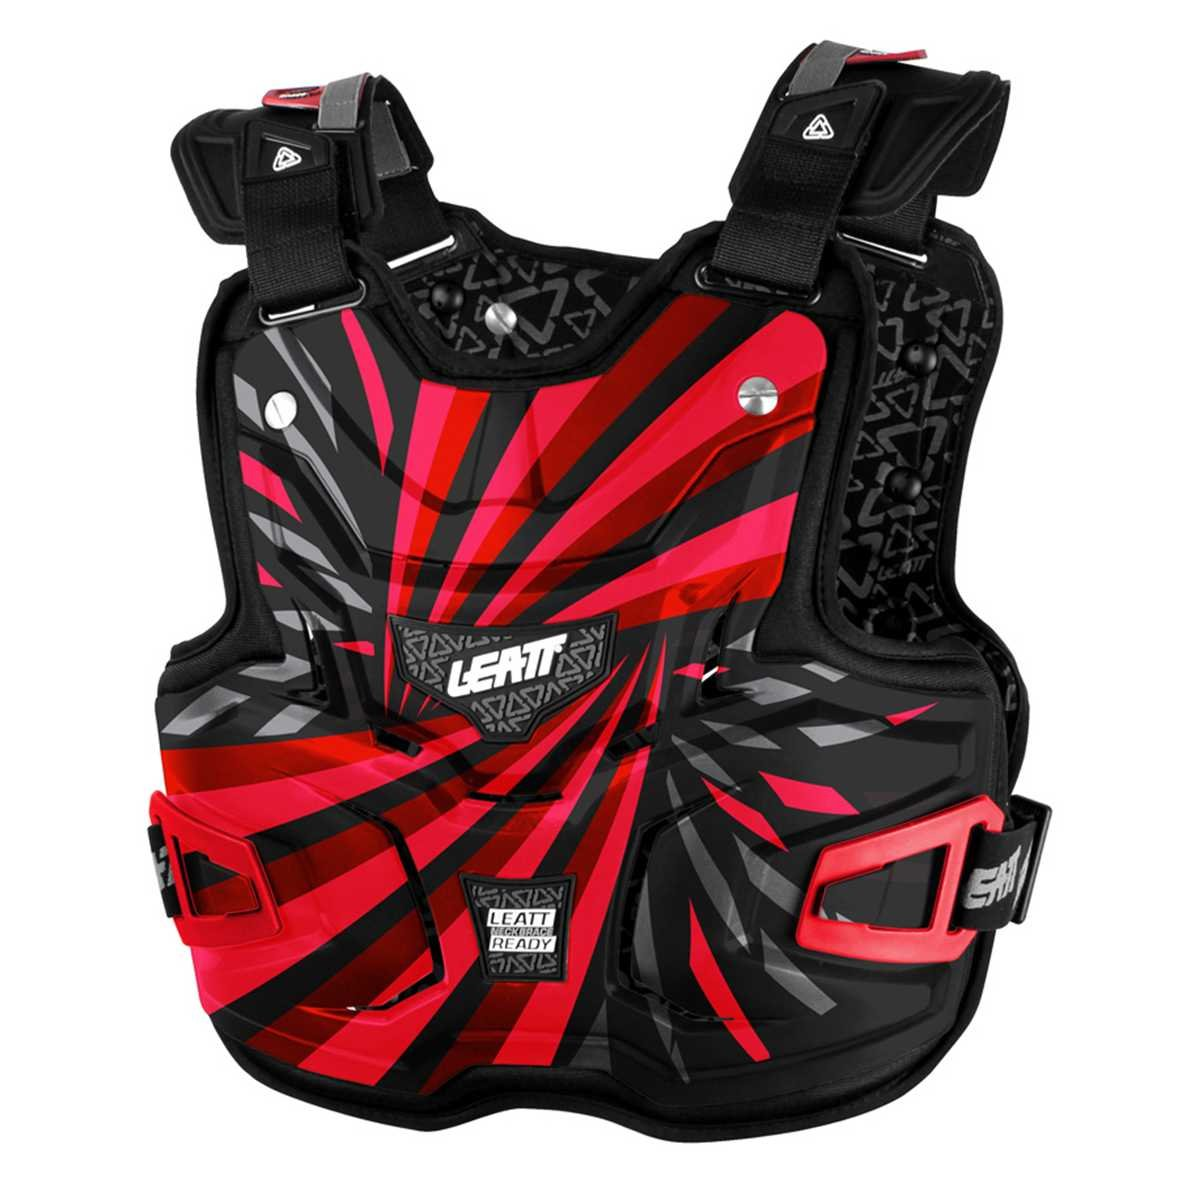 chest protector Adult